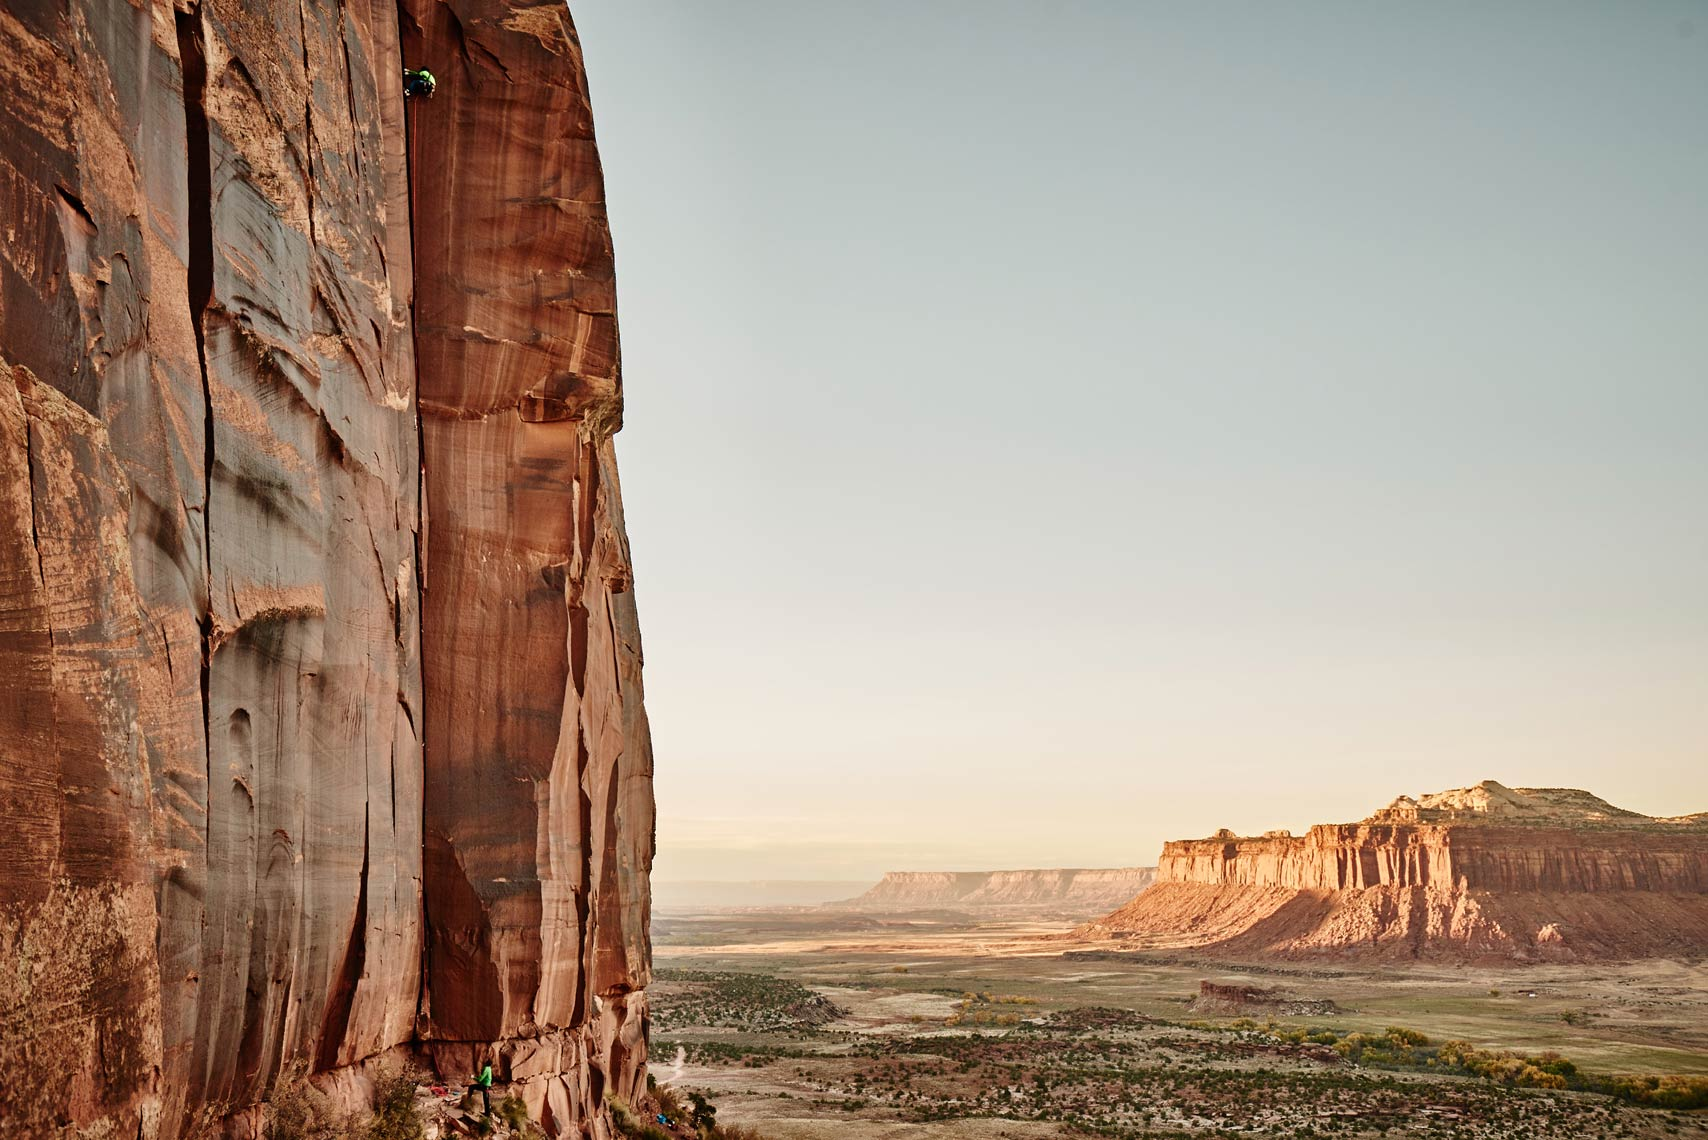 RD_141025_MOAB_4719